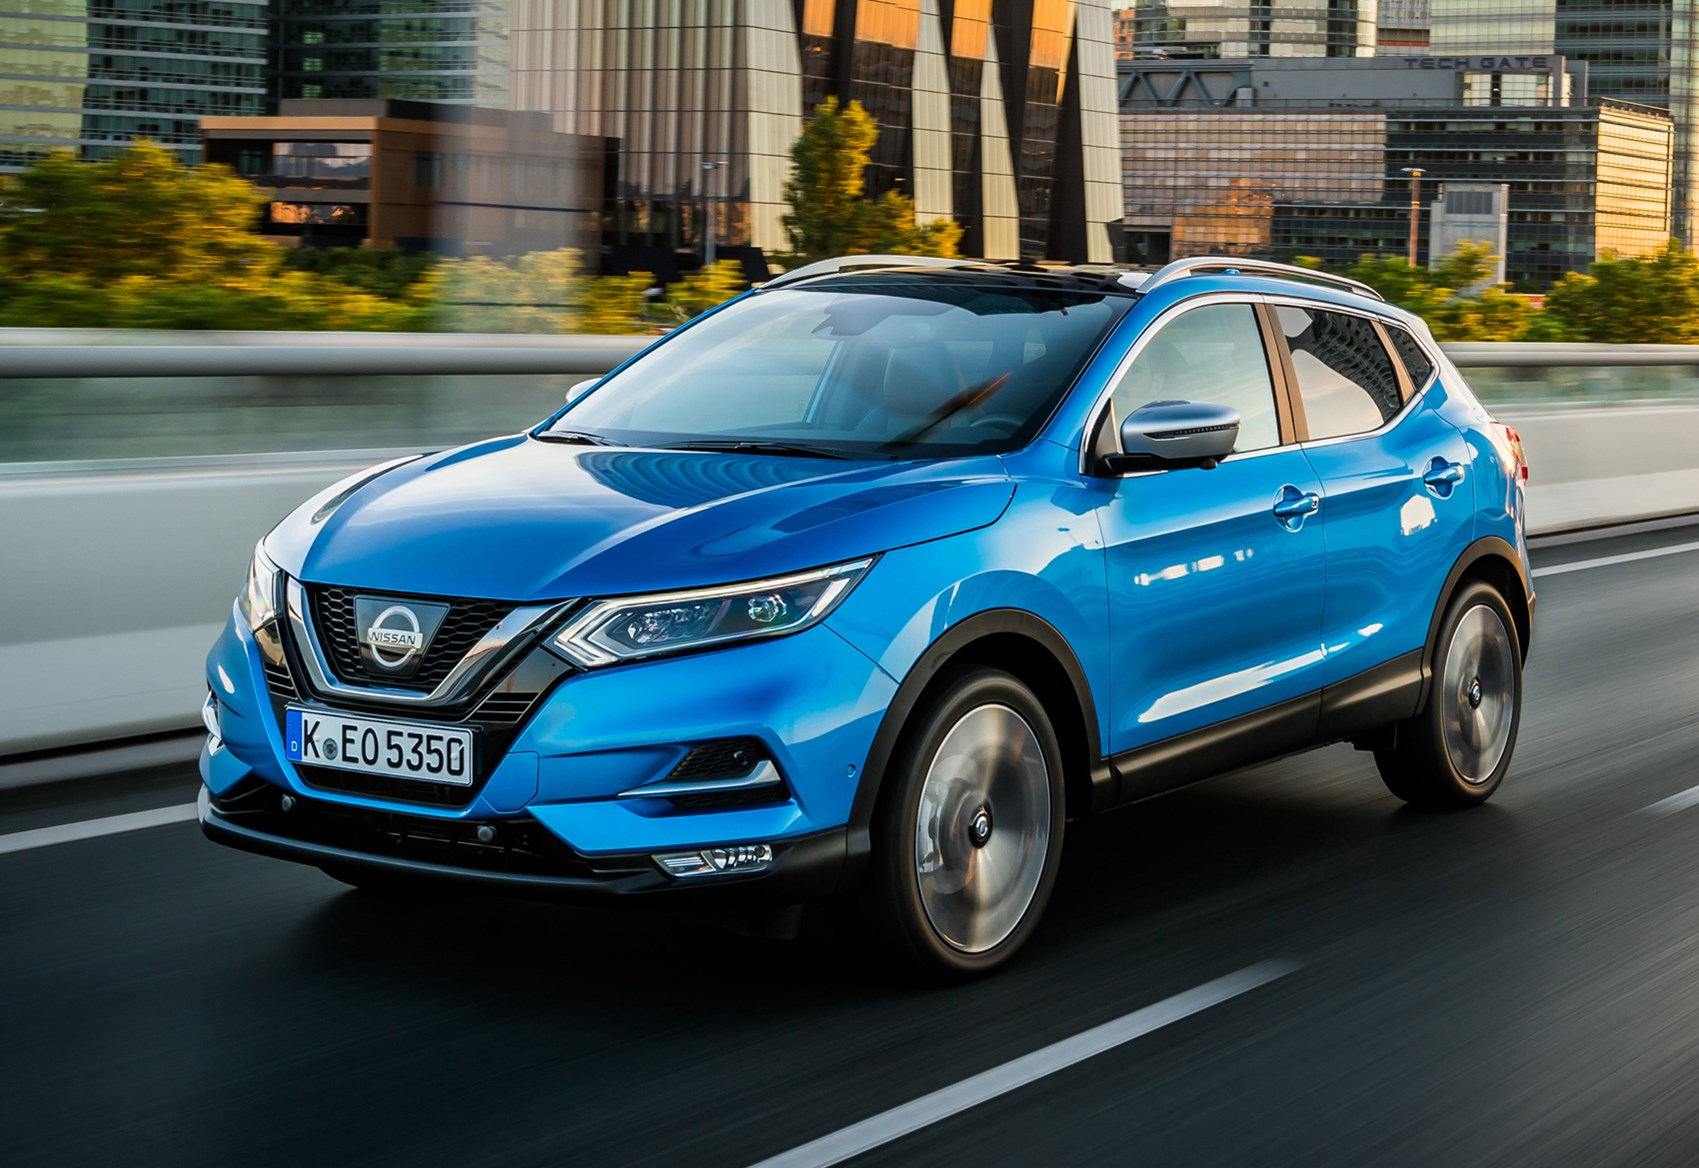 Nissan Qashqai Station Wagon Review (2014 - ) | Parkers